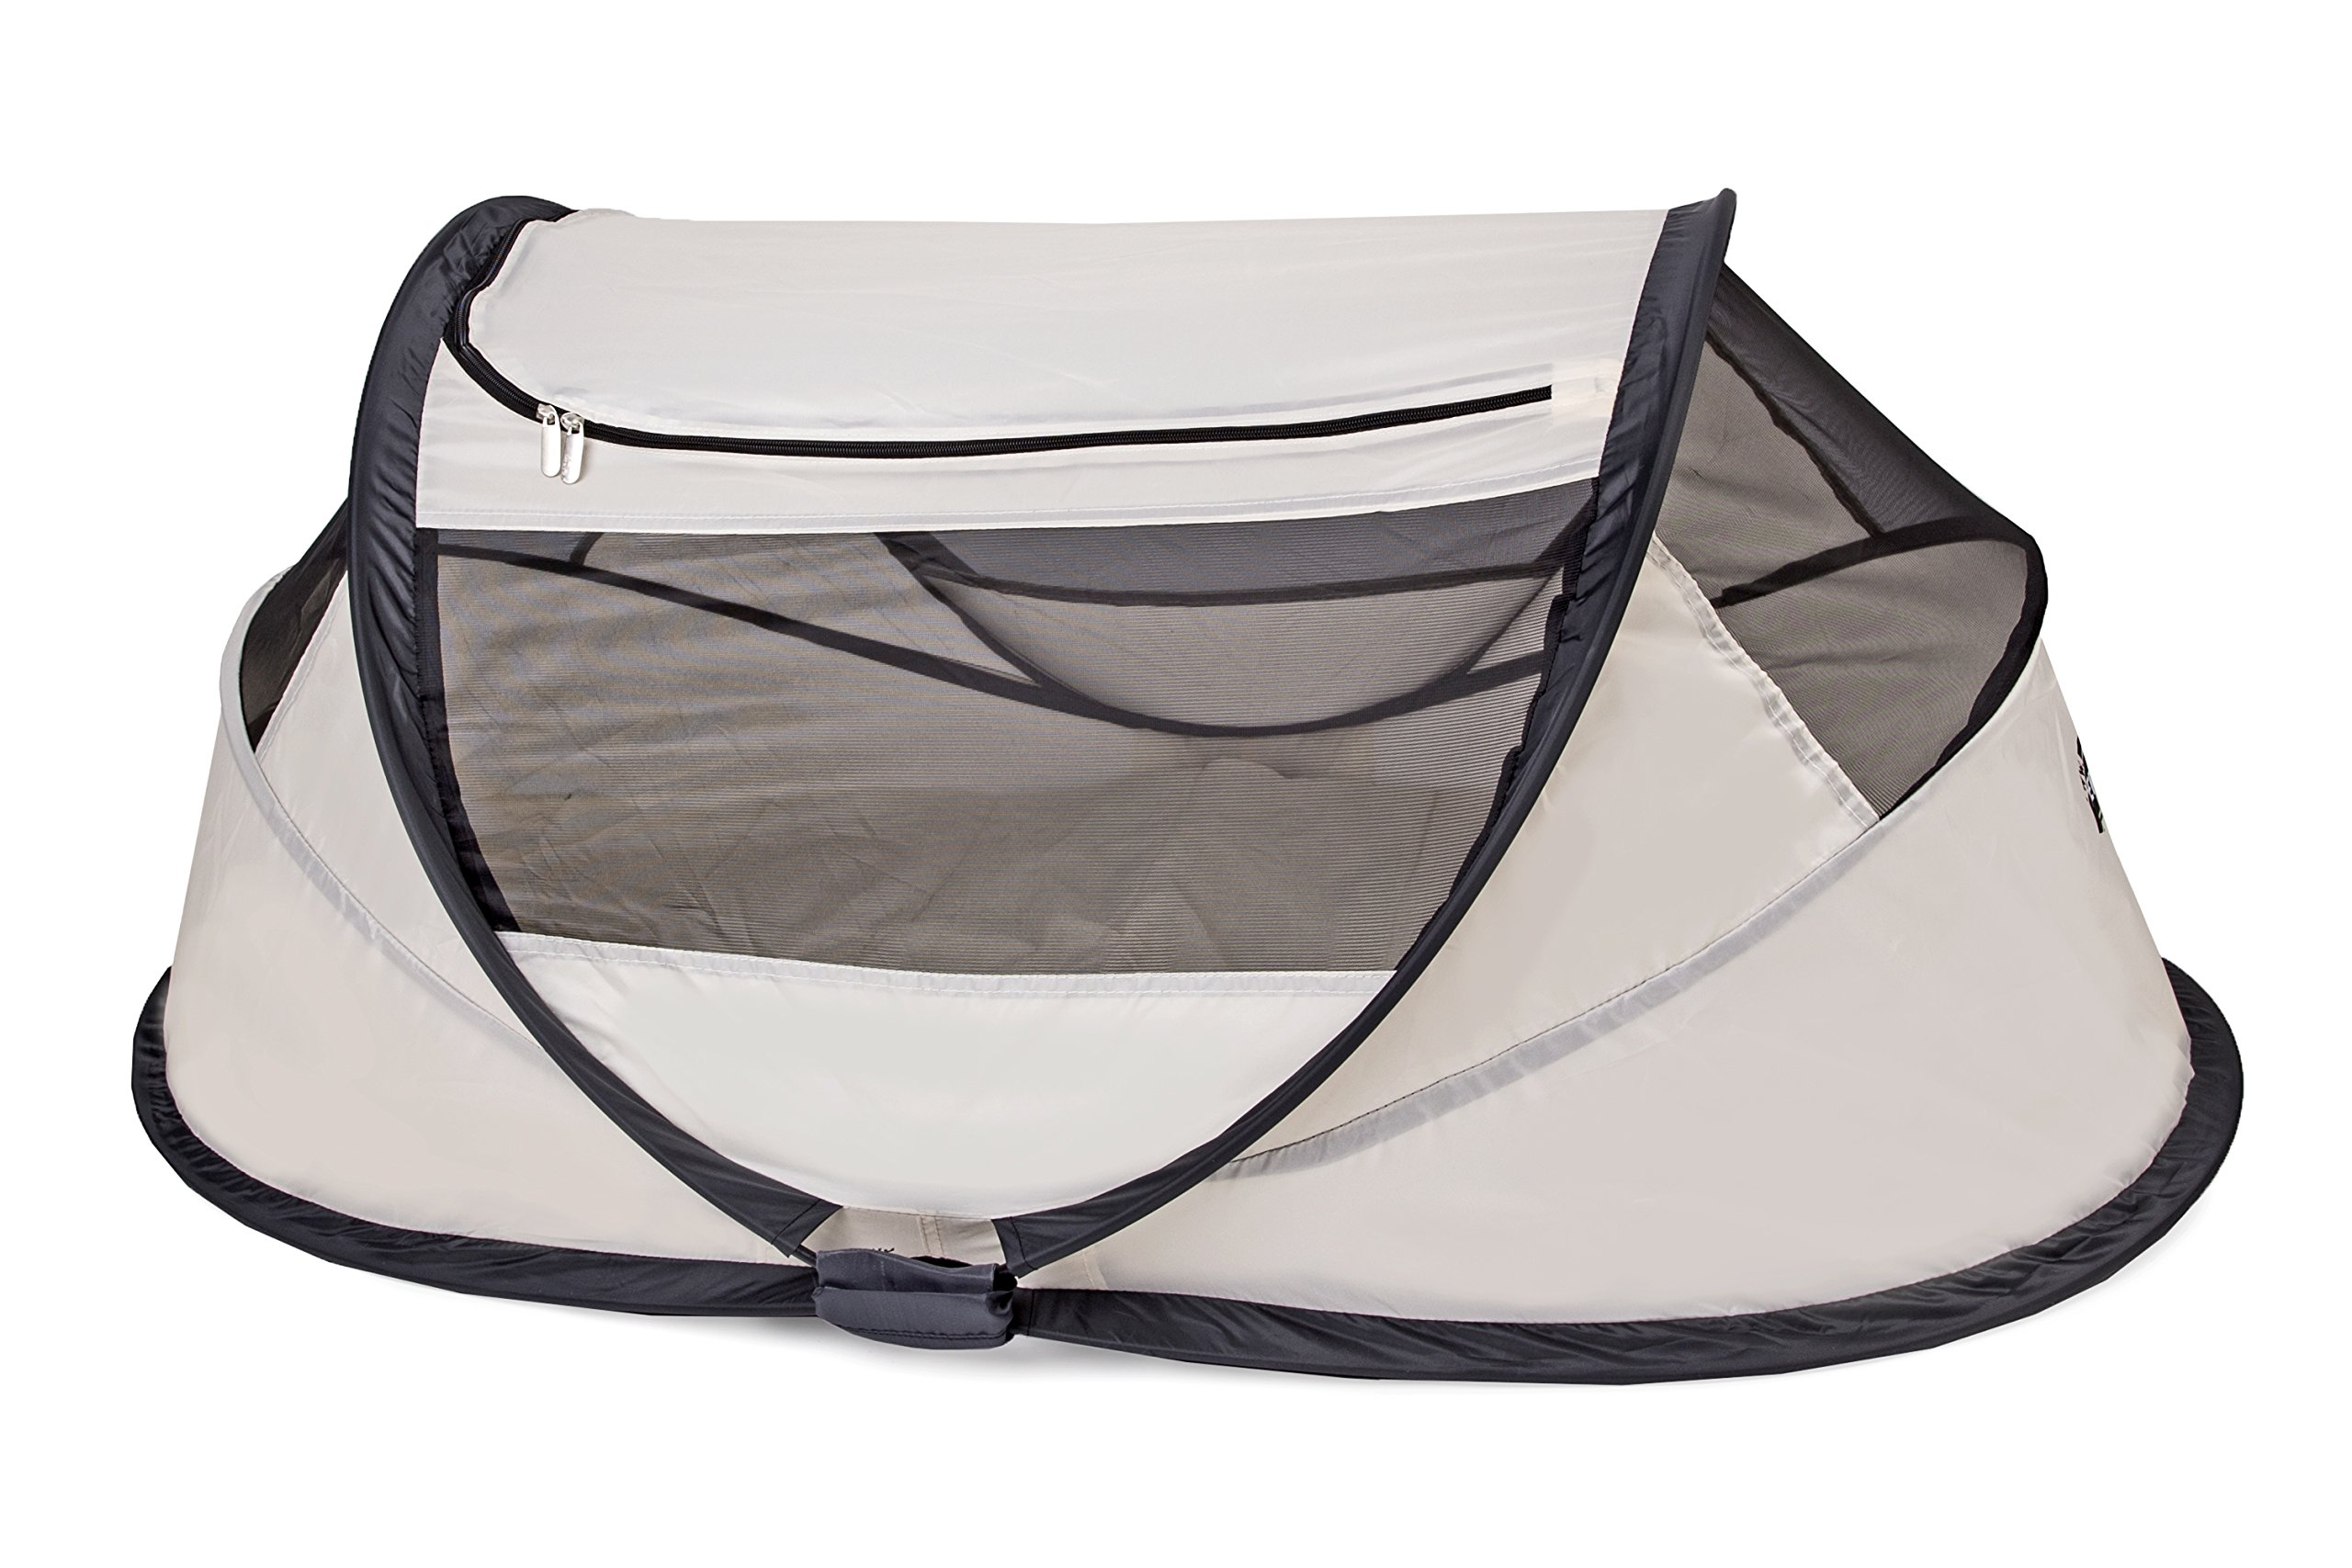 Travel Cot Babybox (Khaki) Deryan 50% UV Protection and flame retardant fabric Setup in 2 seconds and a anti-musquito net  1